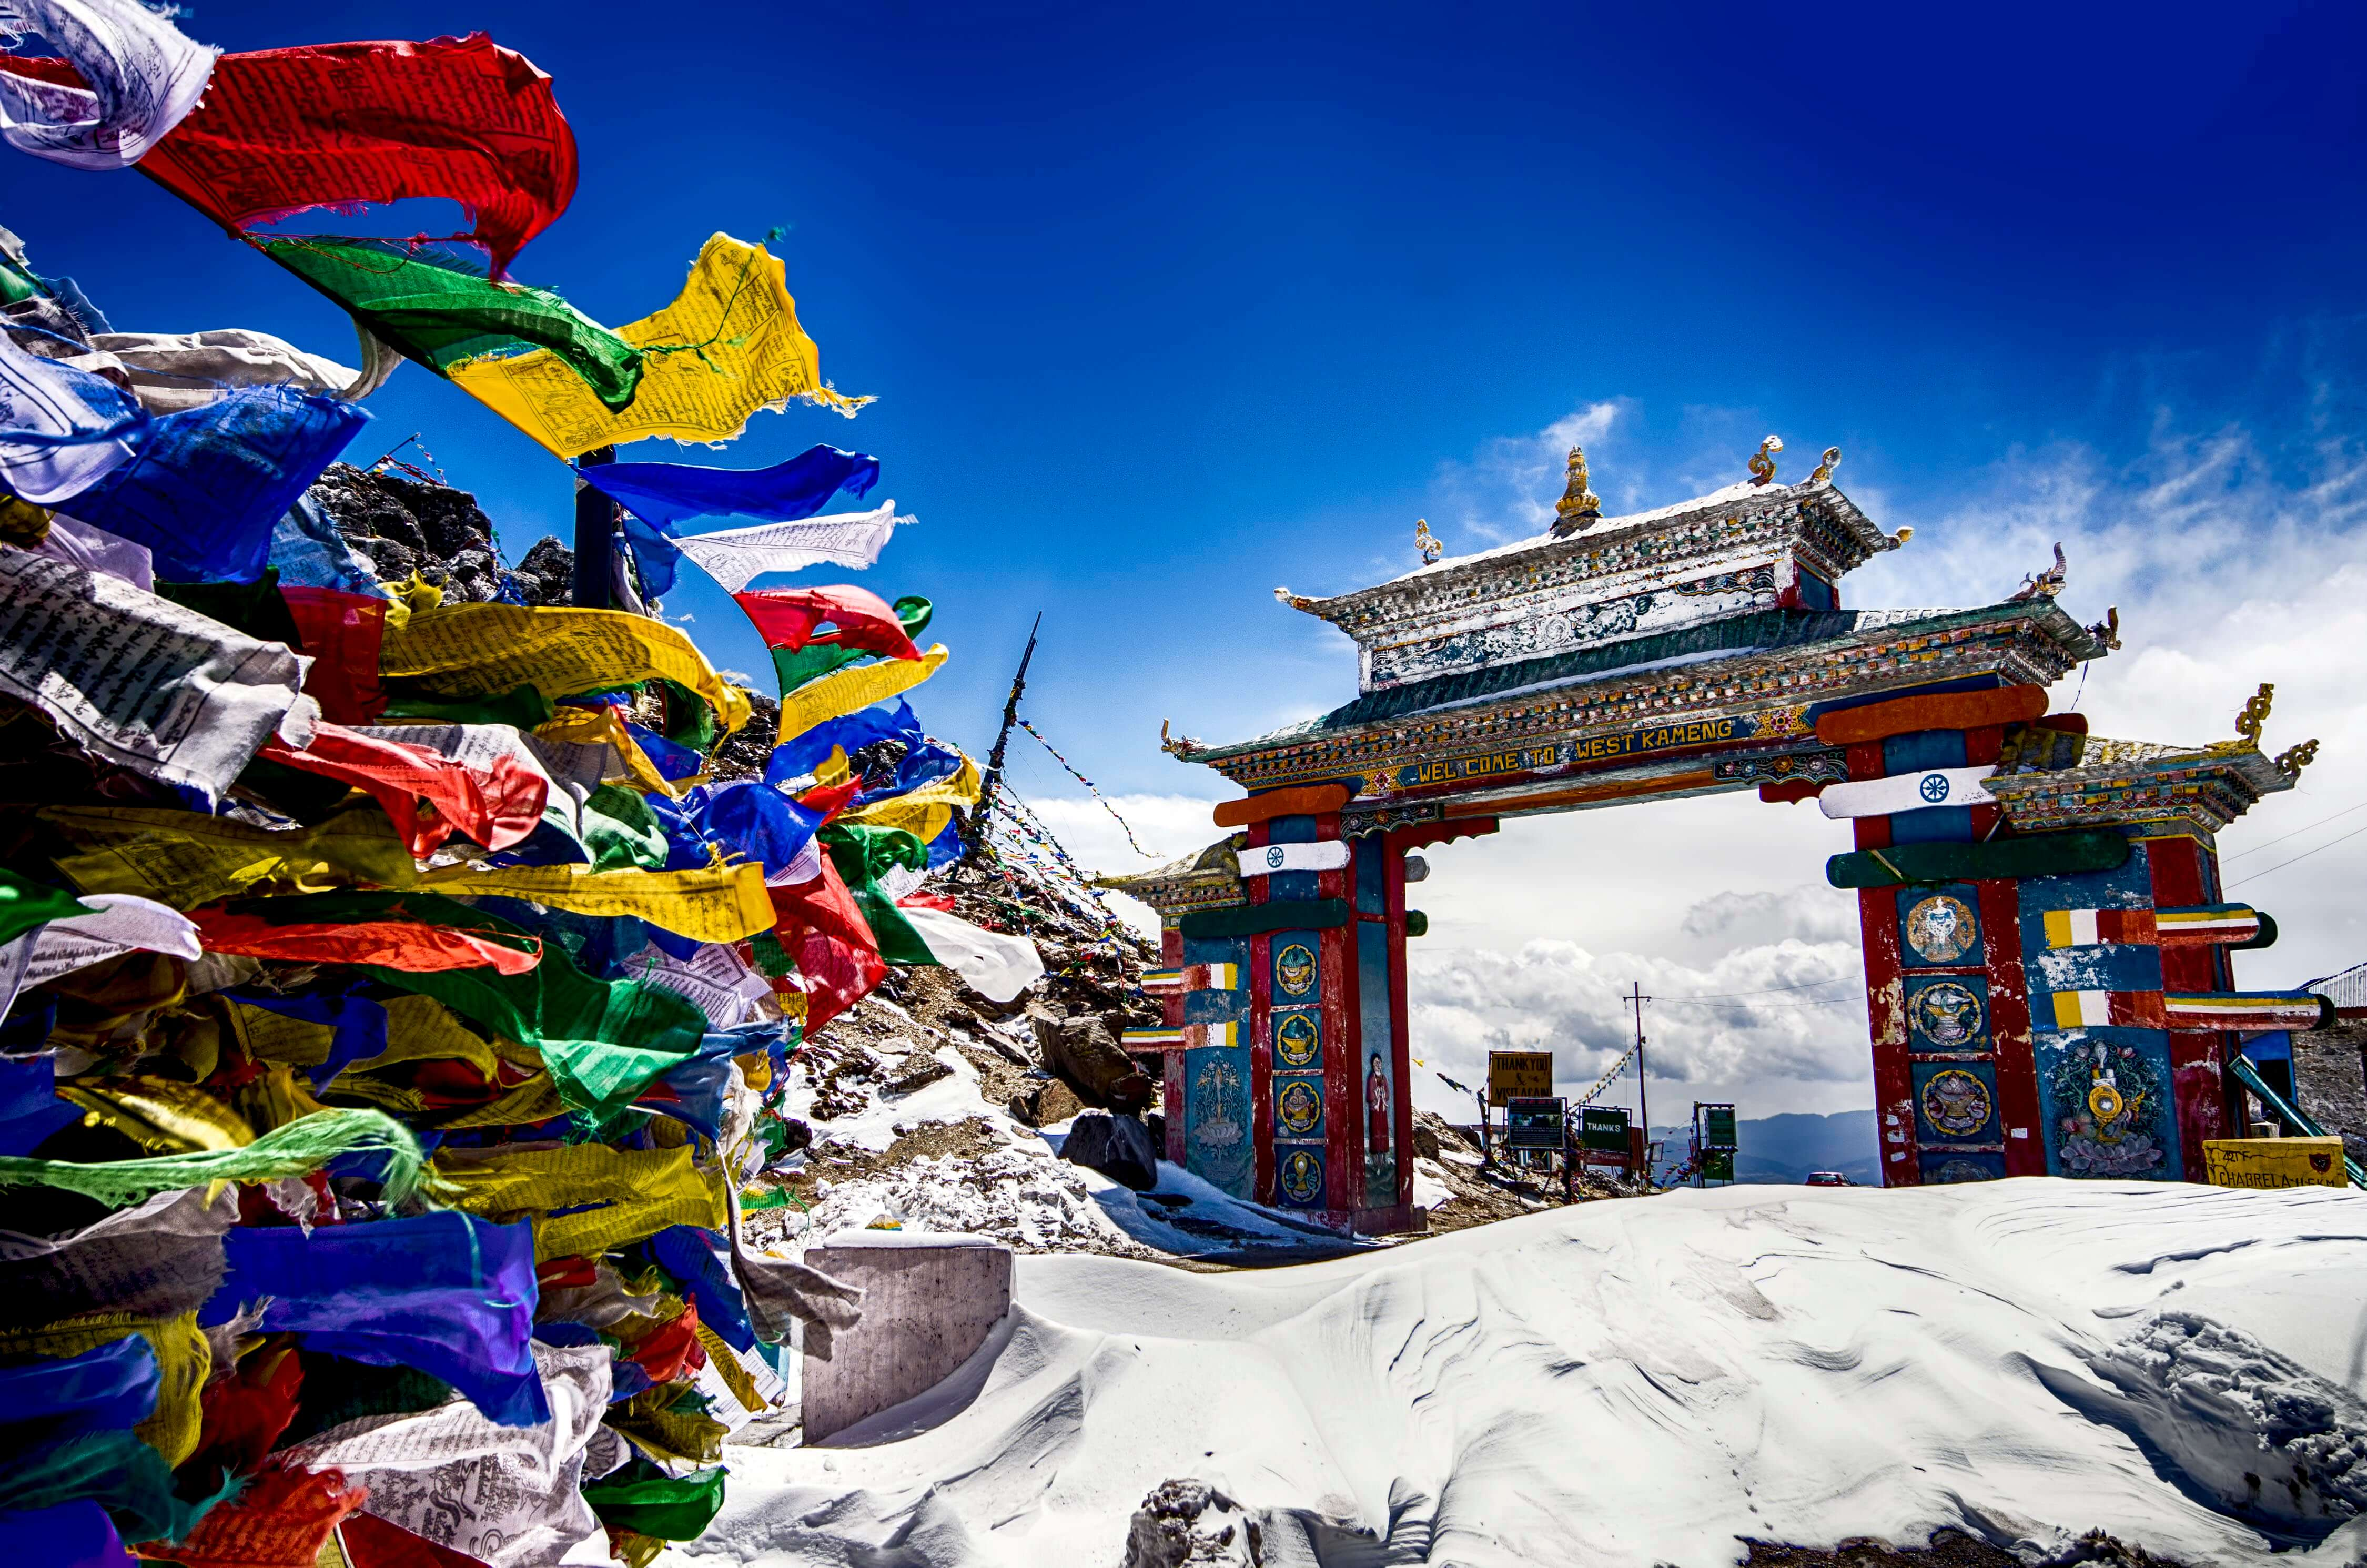 Top 10 Holiday Destinations for Snow Lovers